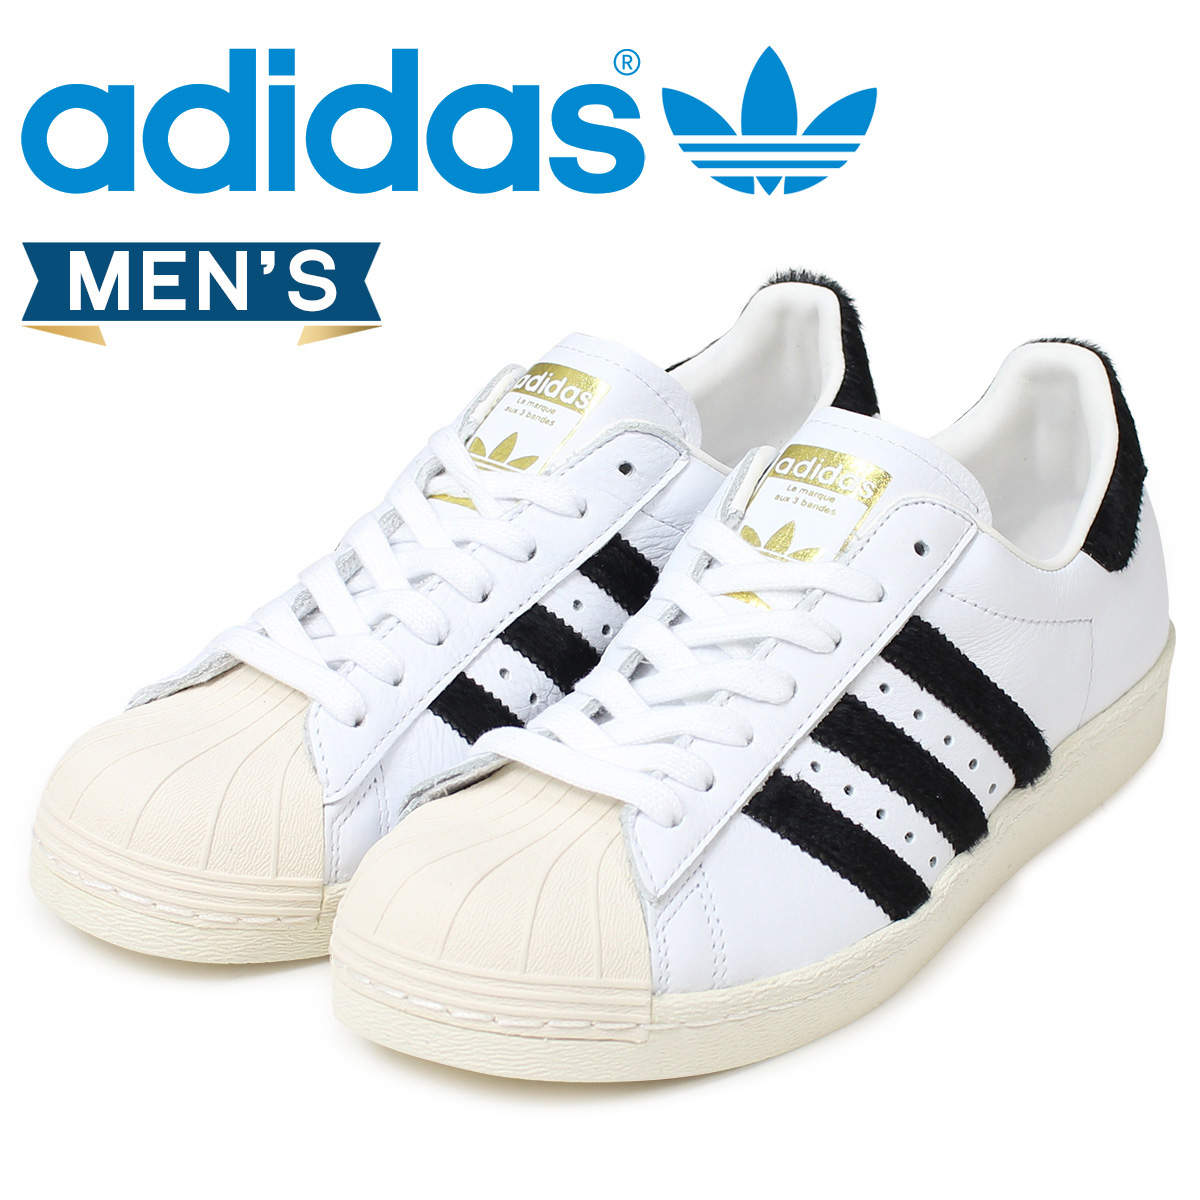 buy online 1b816 ef8bb Adidas superstar Lady s men sneakers adidas originals SUPERSTAR 80S BB2231  shoes white originals  the 12 22 additional arrival